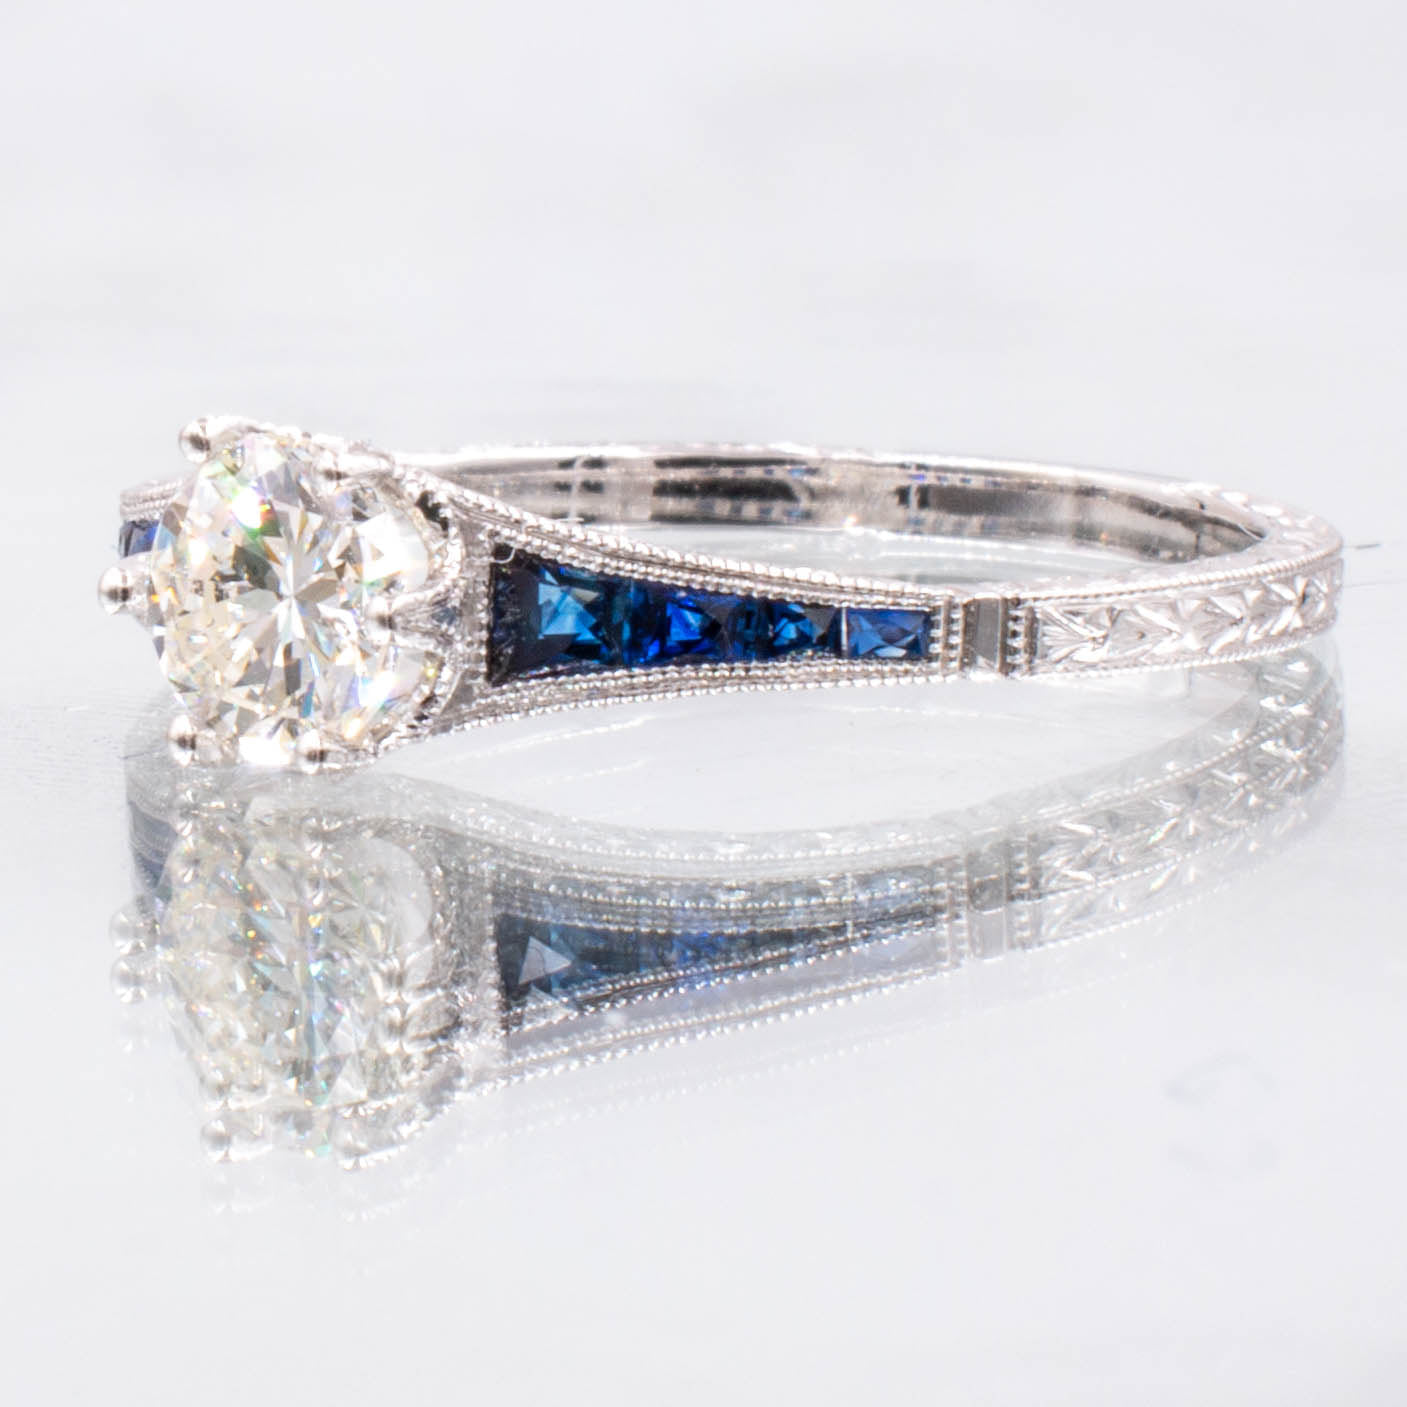 Art Deco Inspired Diamond & Sapphire Engagement Ring in 14K White Gold